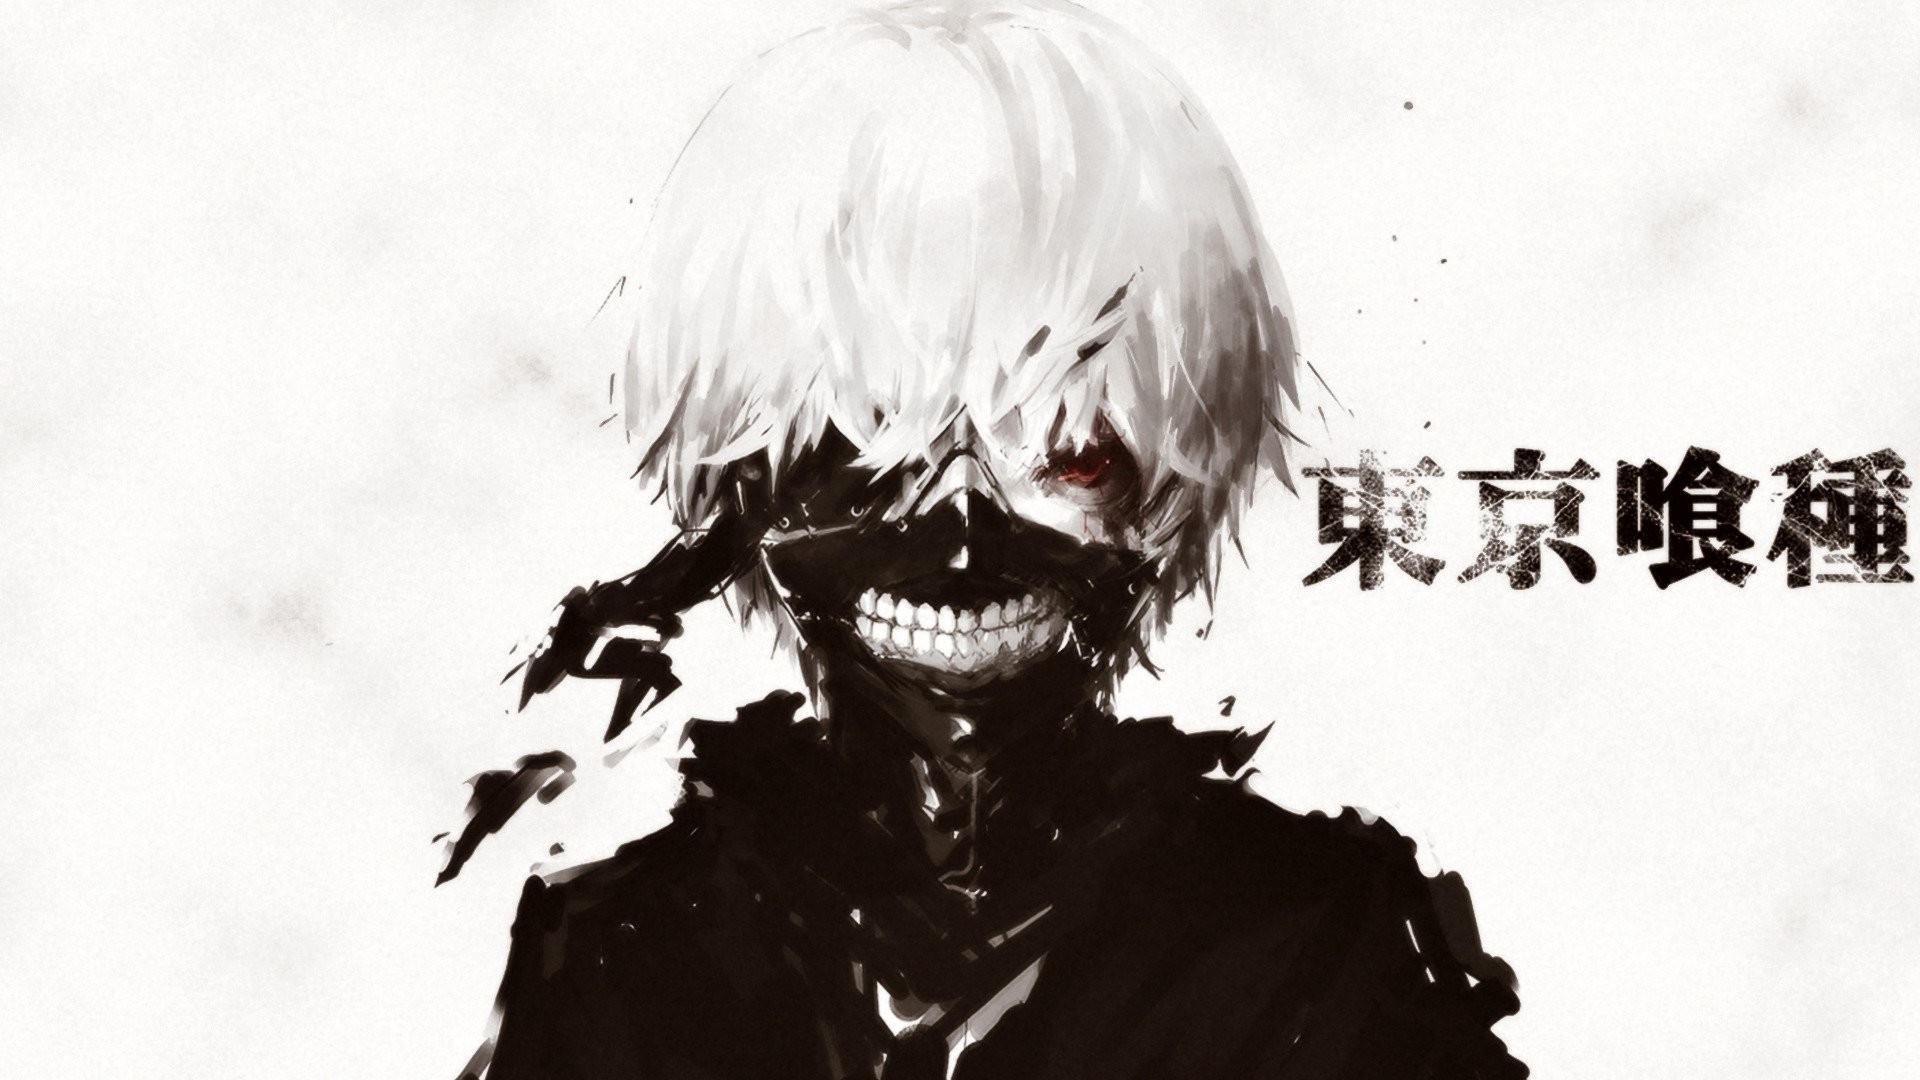 1920x1080 Tokyo Ghoul Wallpaper For The Smartphone